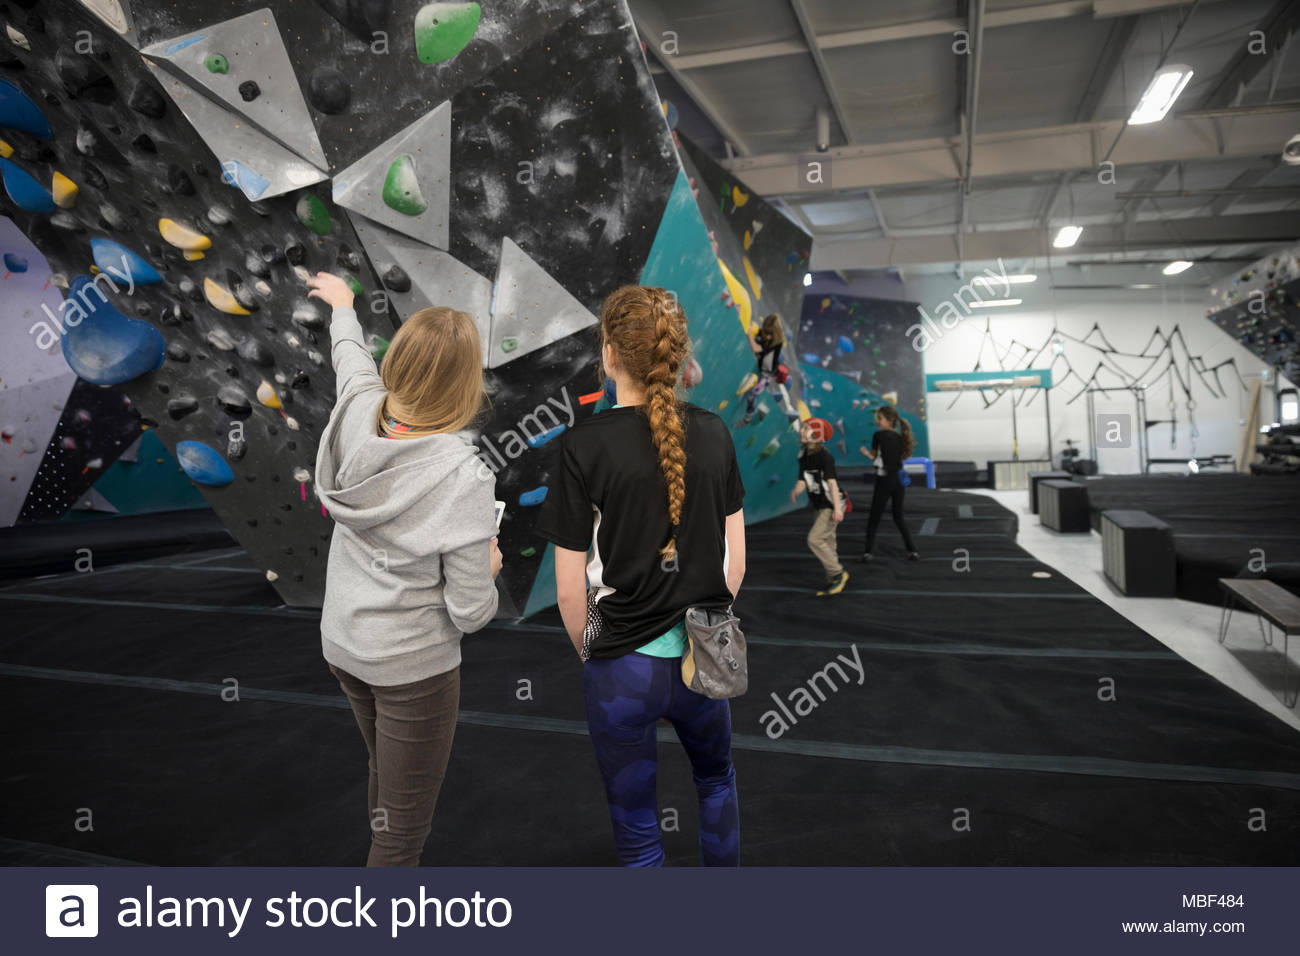 Female instructor guiding girl rock climbing student at climbing wall in climbing gym - Stock Image